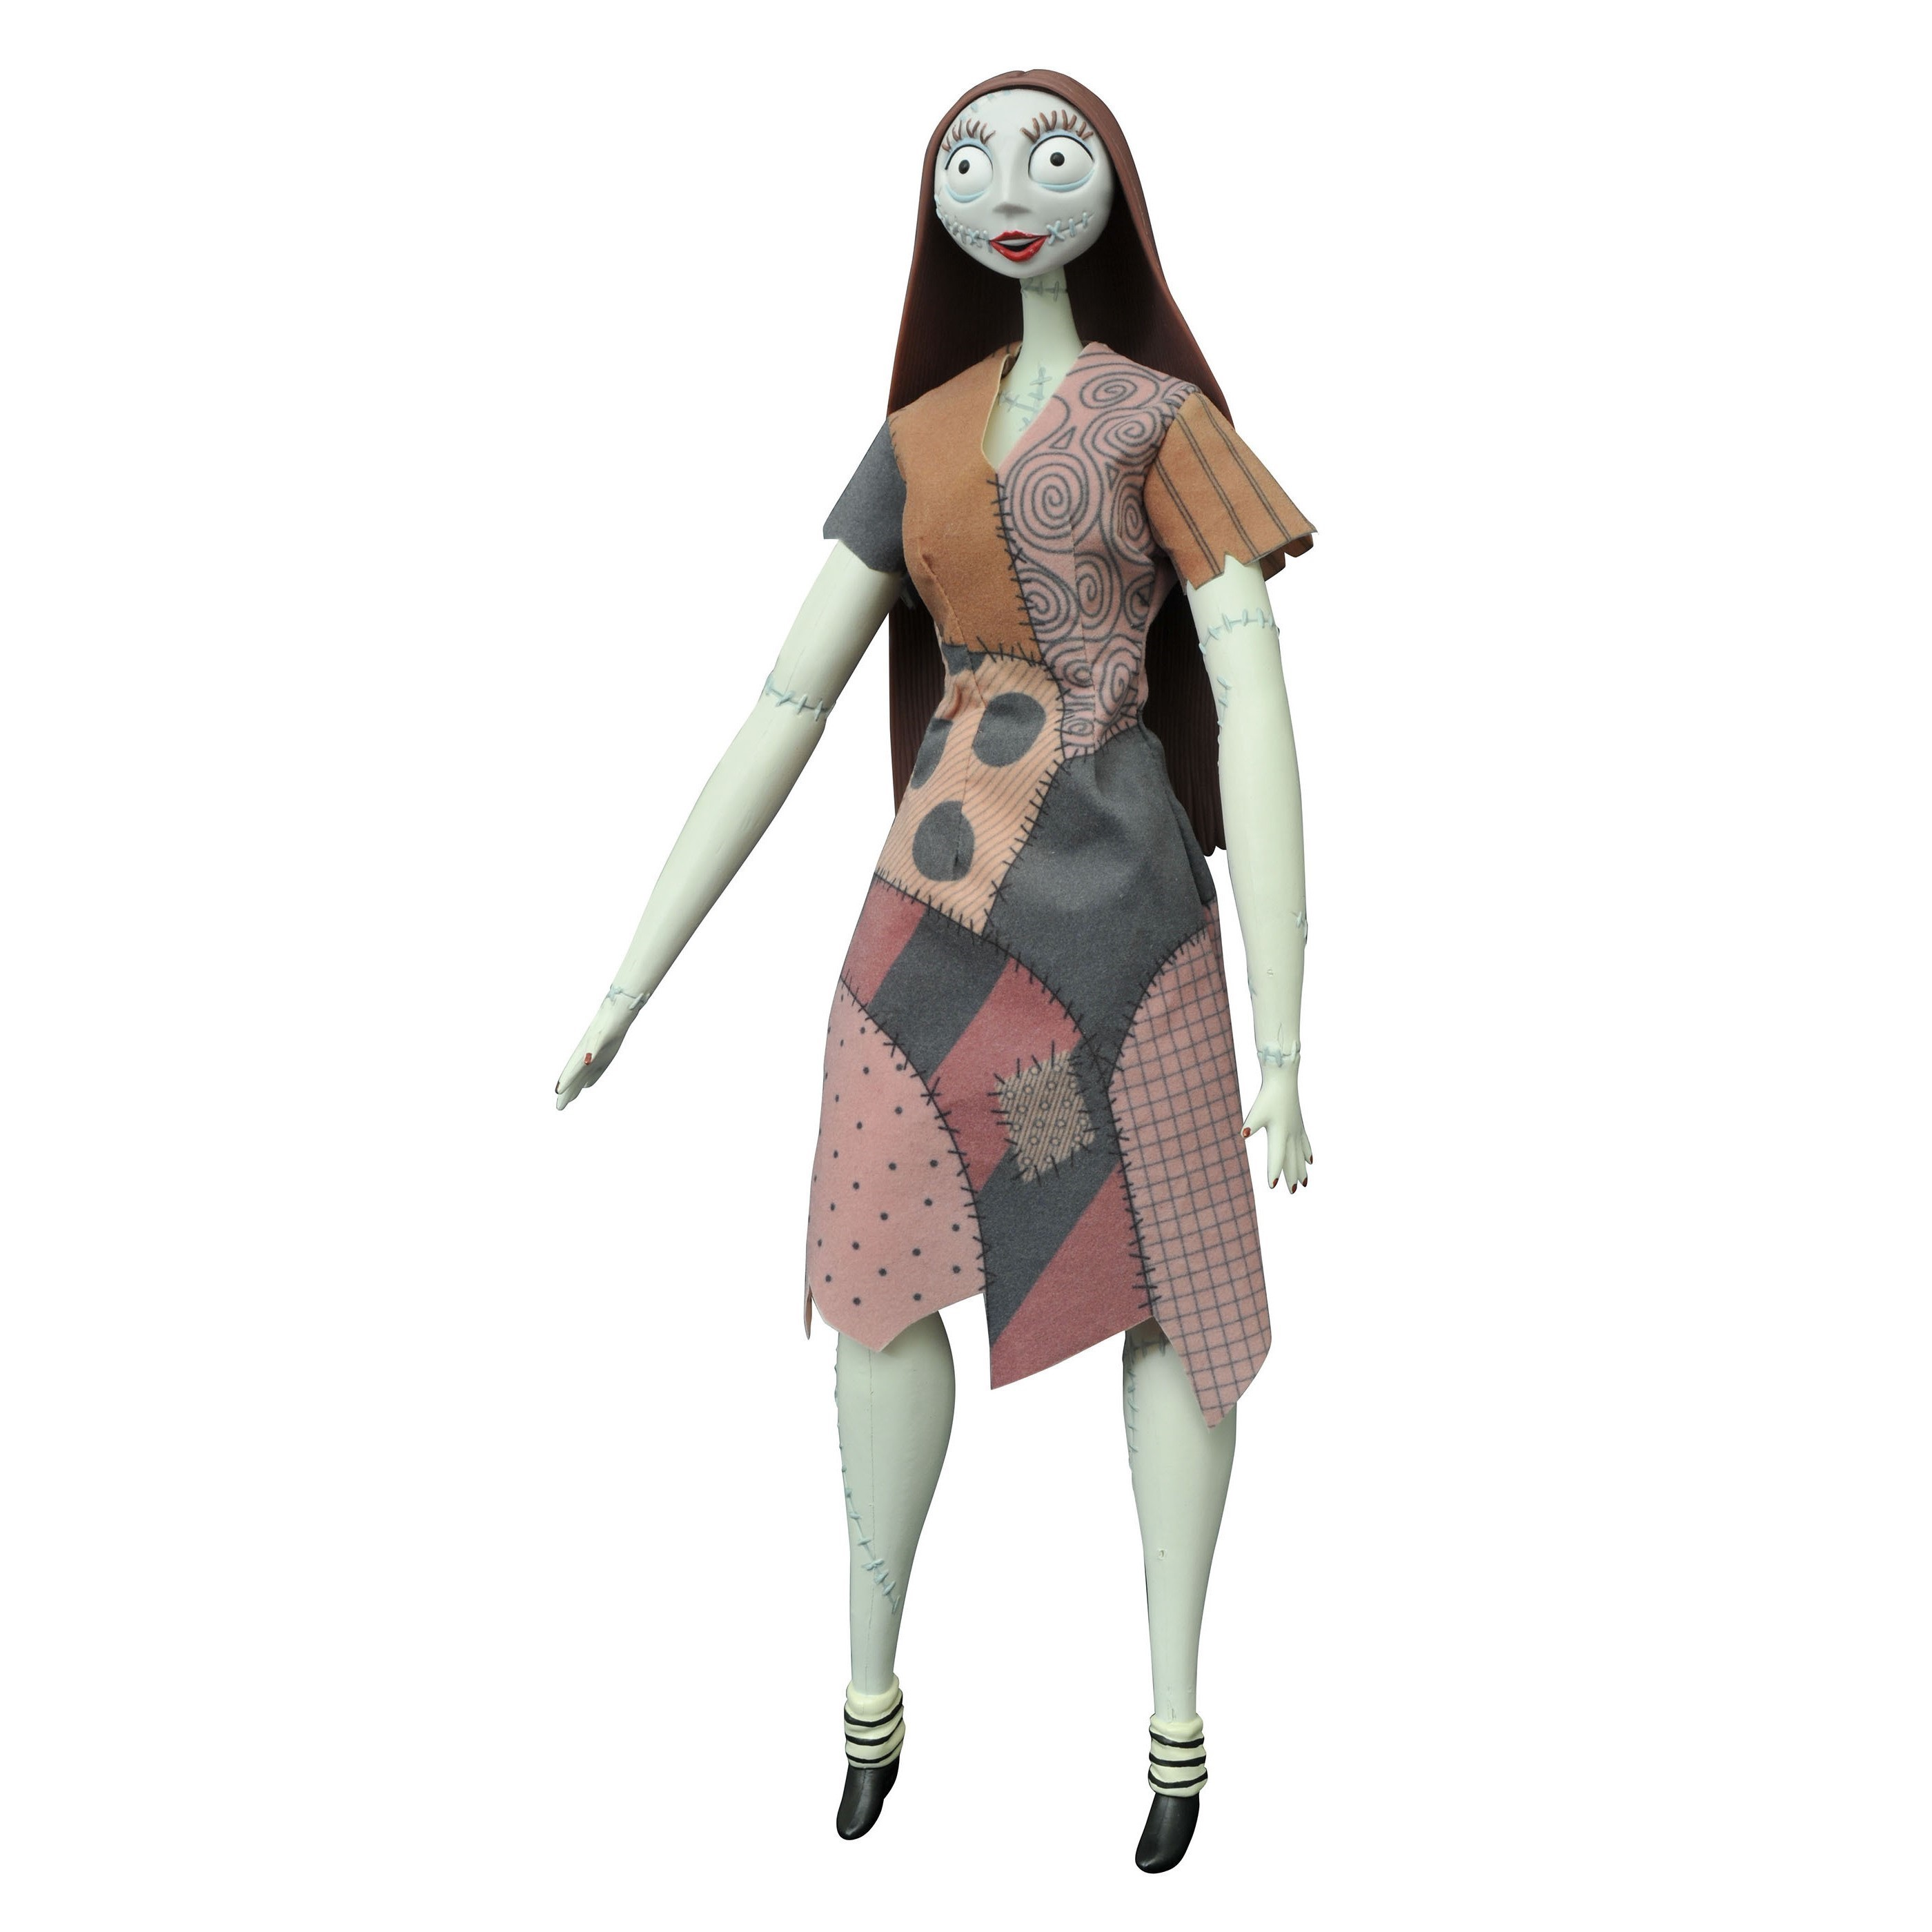 Nightmare Before Christmas Sally Unlimited Coffin Doll - Walmart.com